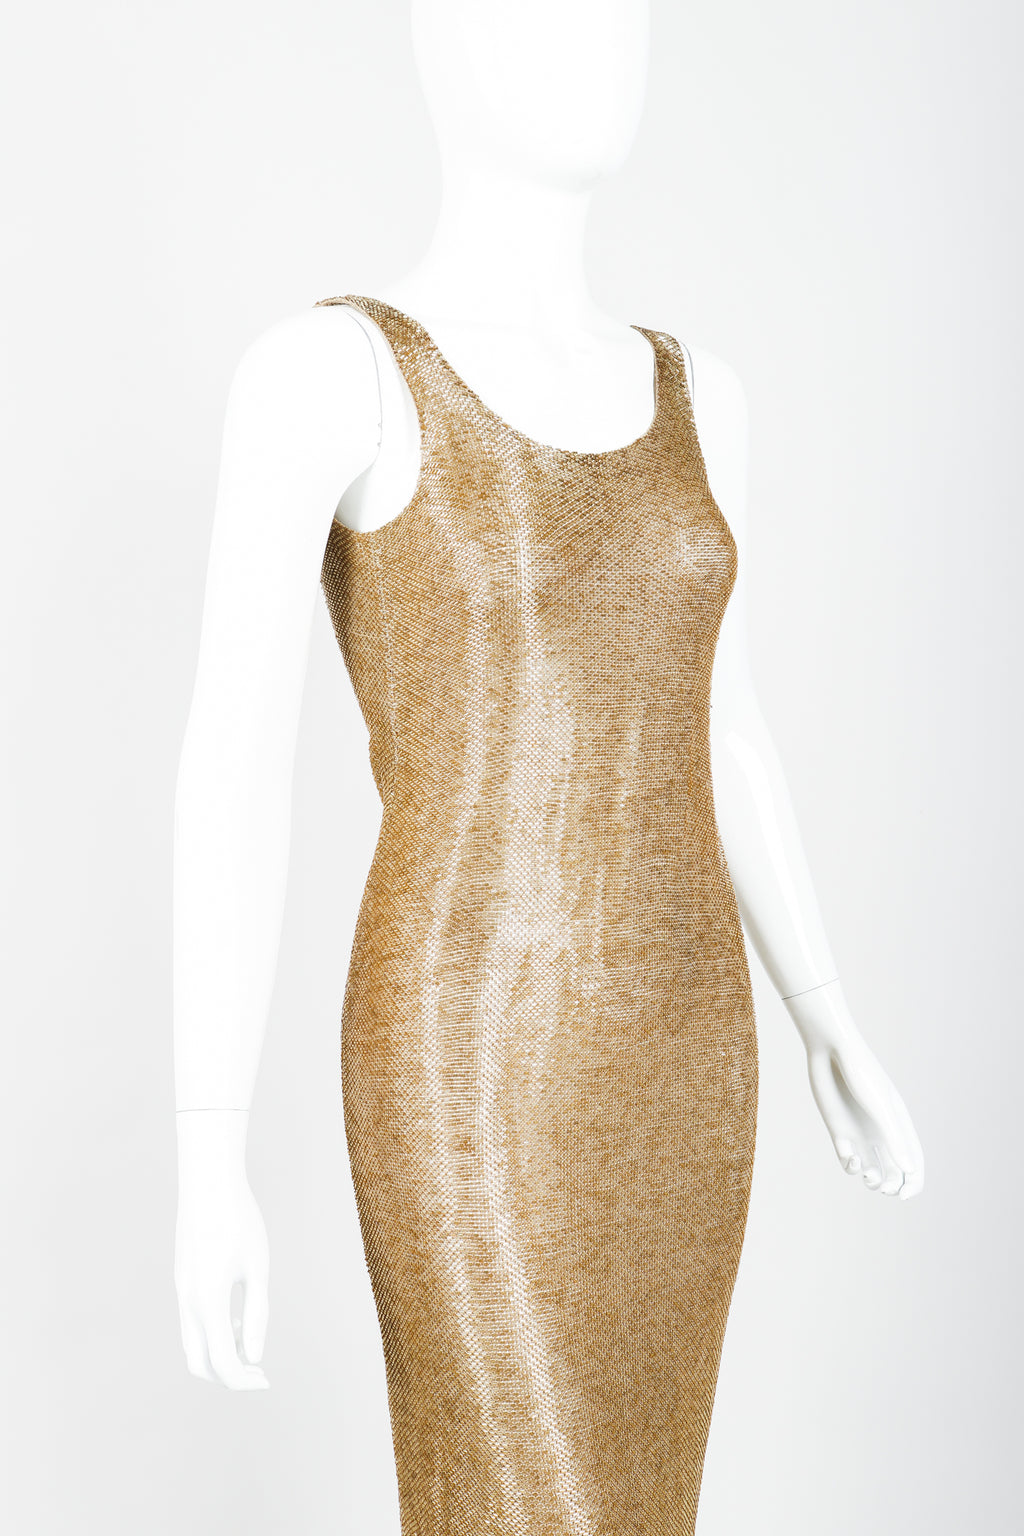 Vintage Fred Hayman Liquid Gold Beaded Gown on Mannequin Cropped at Recess